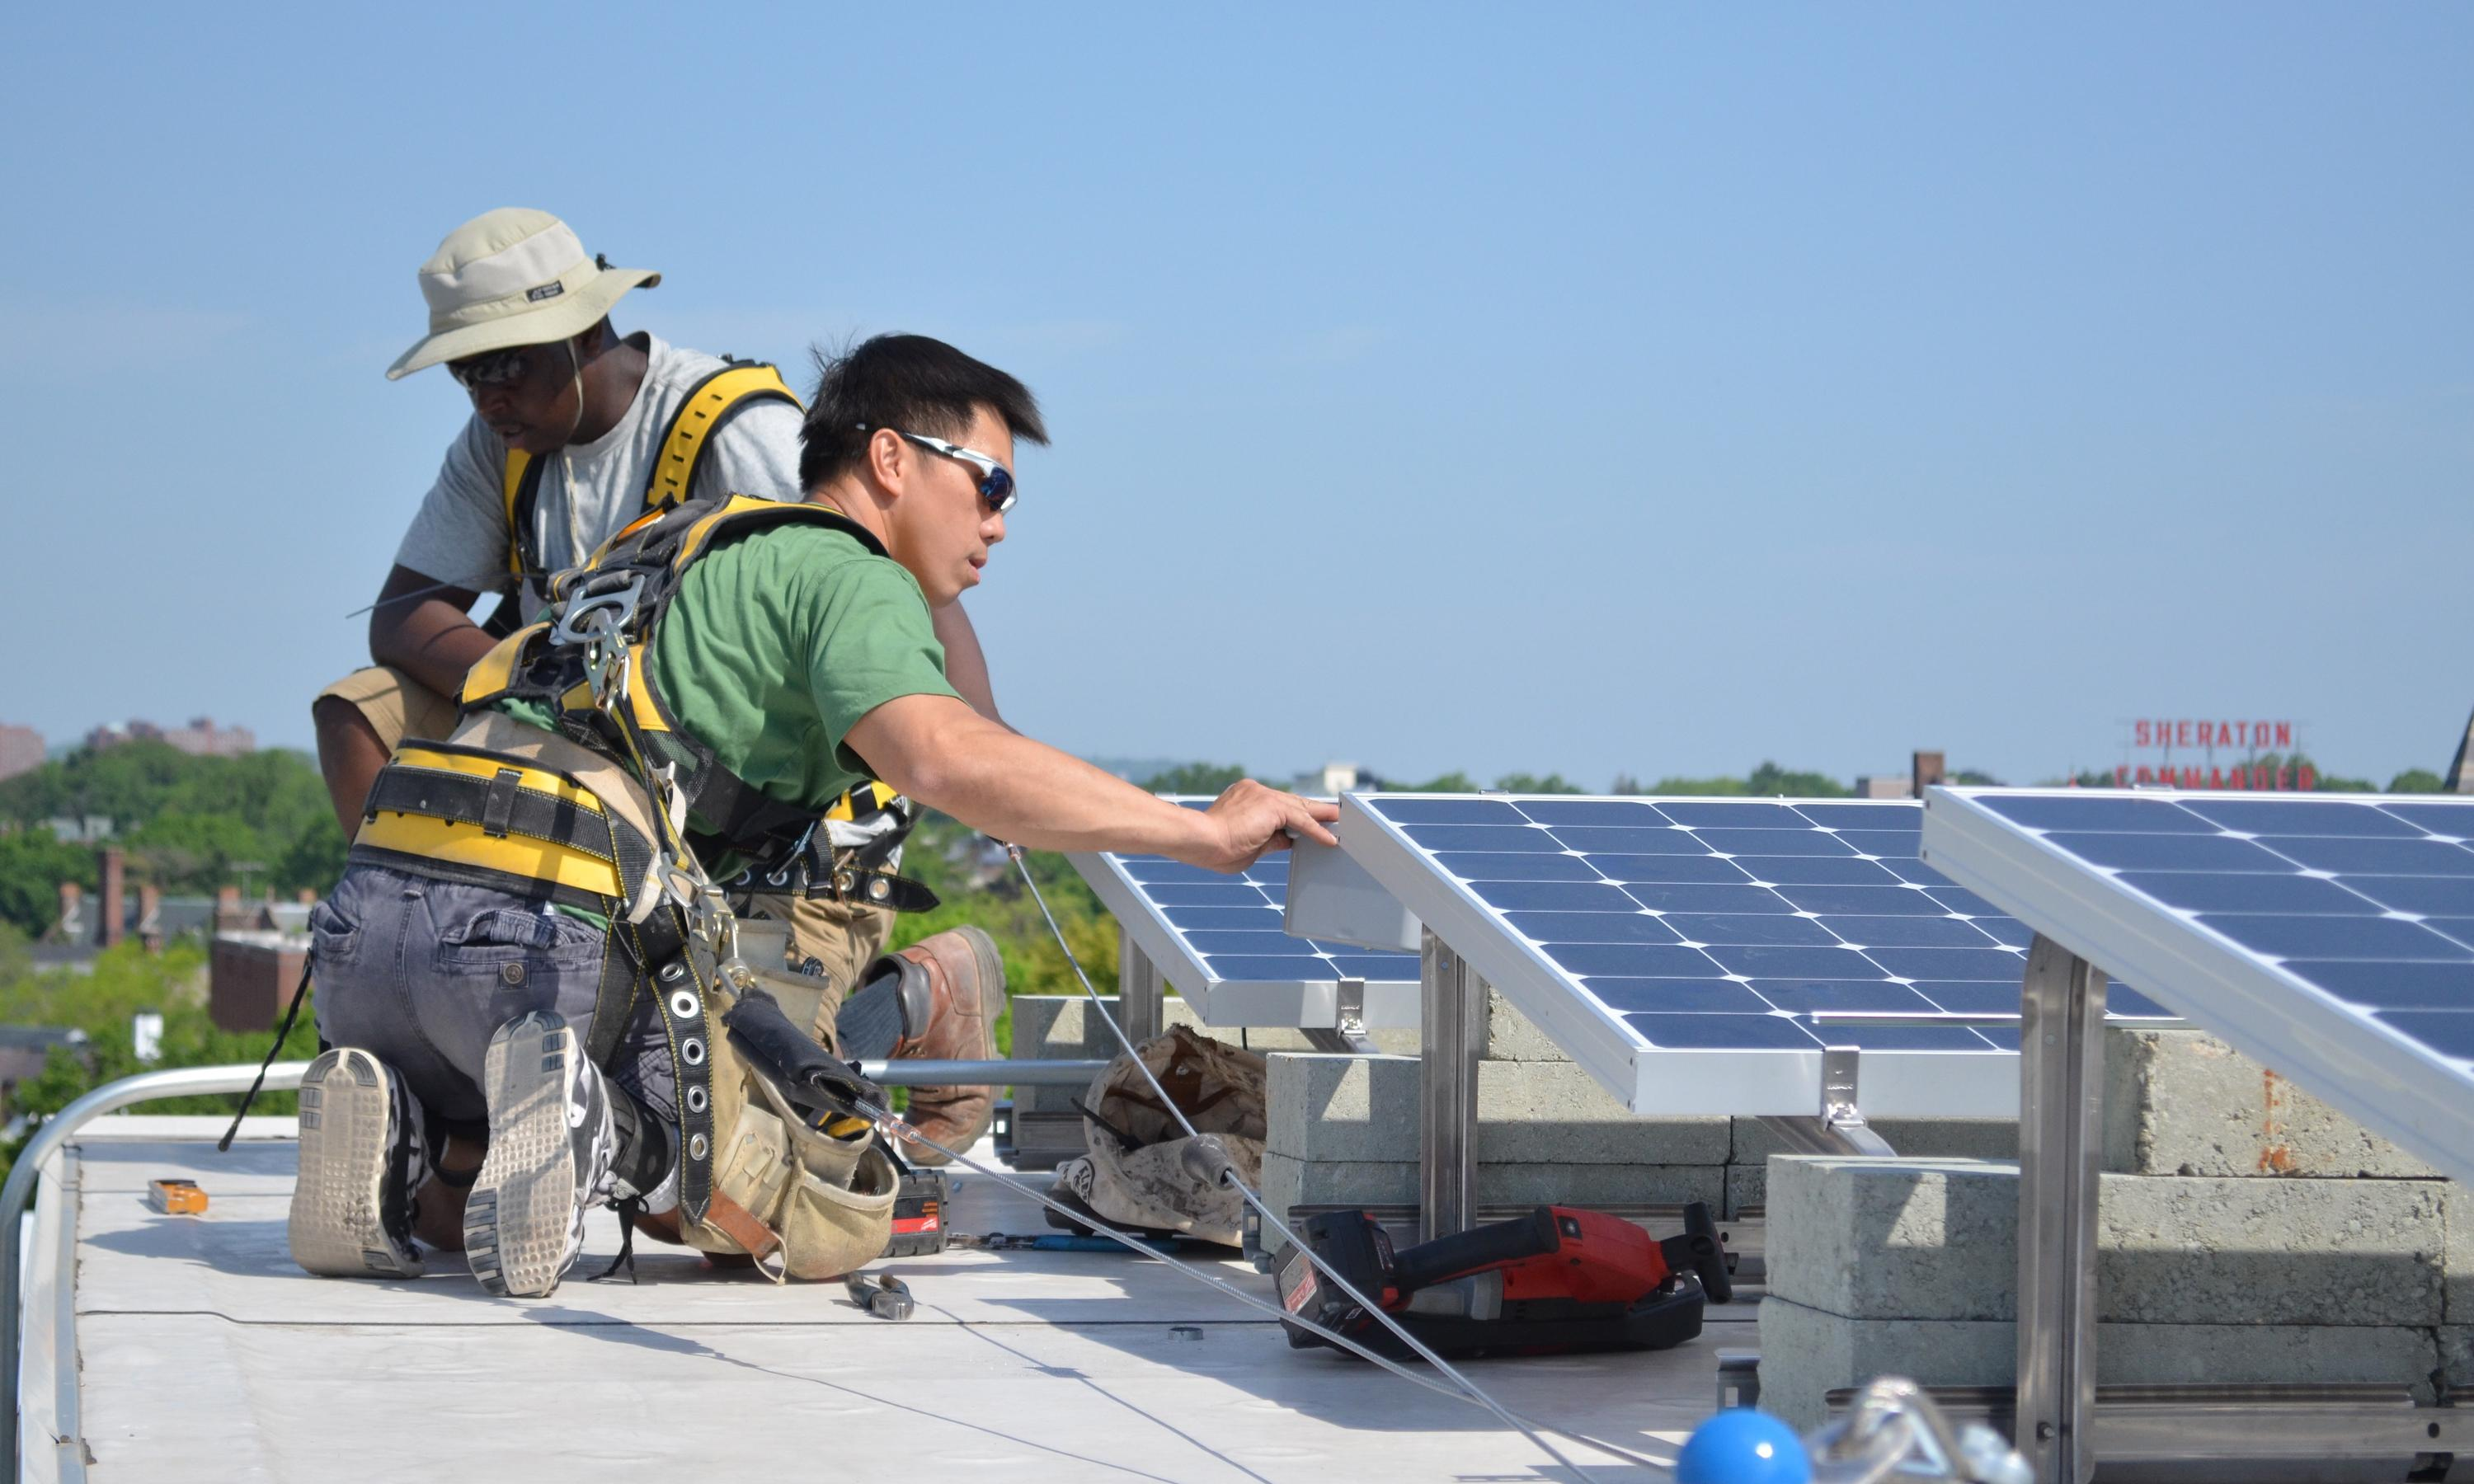 Two workers install solar panels on a roof